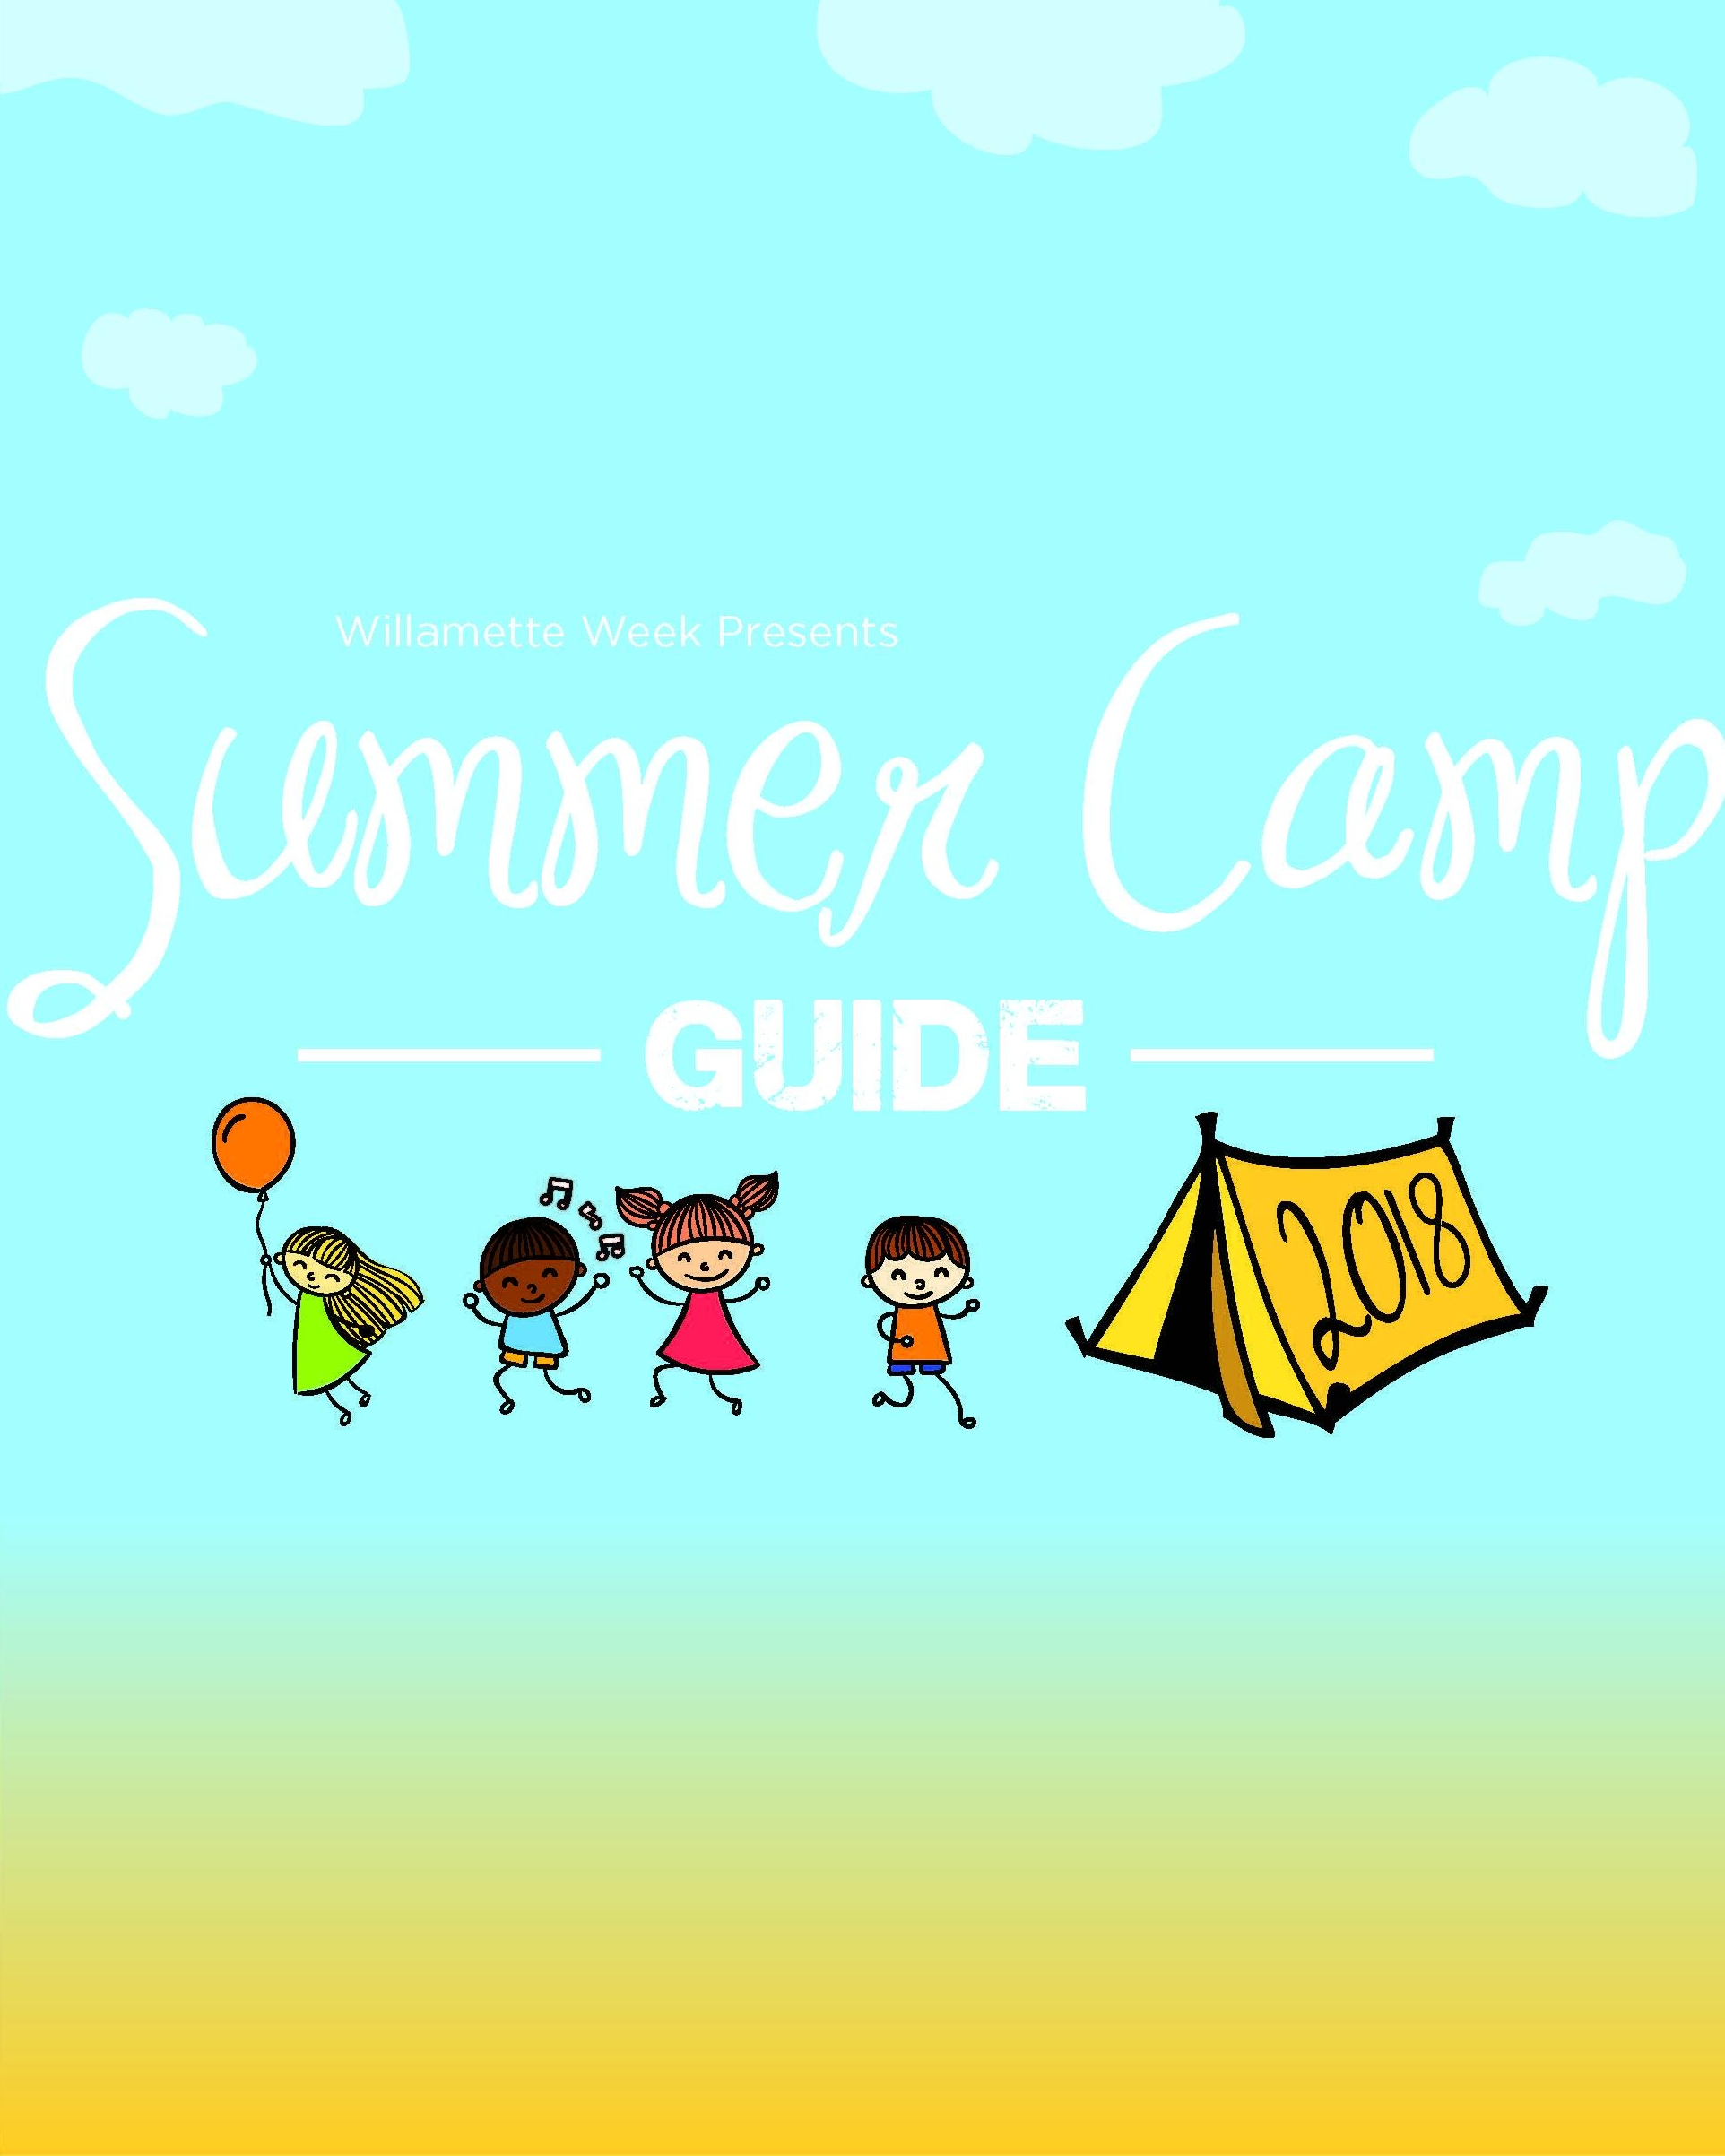 SUMMER CAMP GUIDE - A resource for Portland parents who are deciding where to send their children for summer activities.